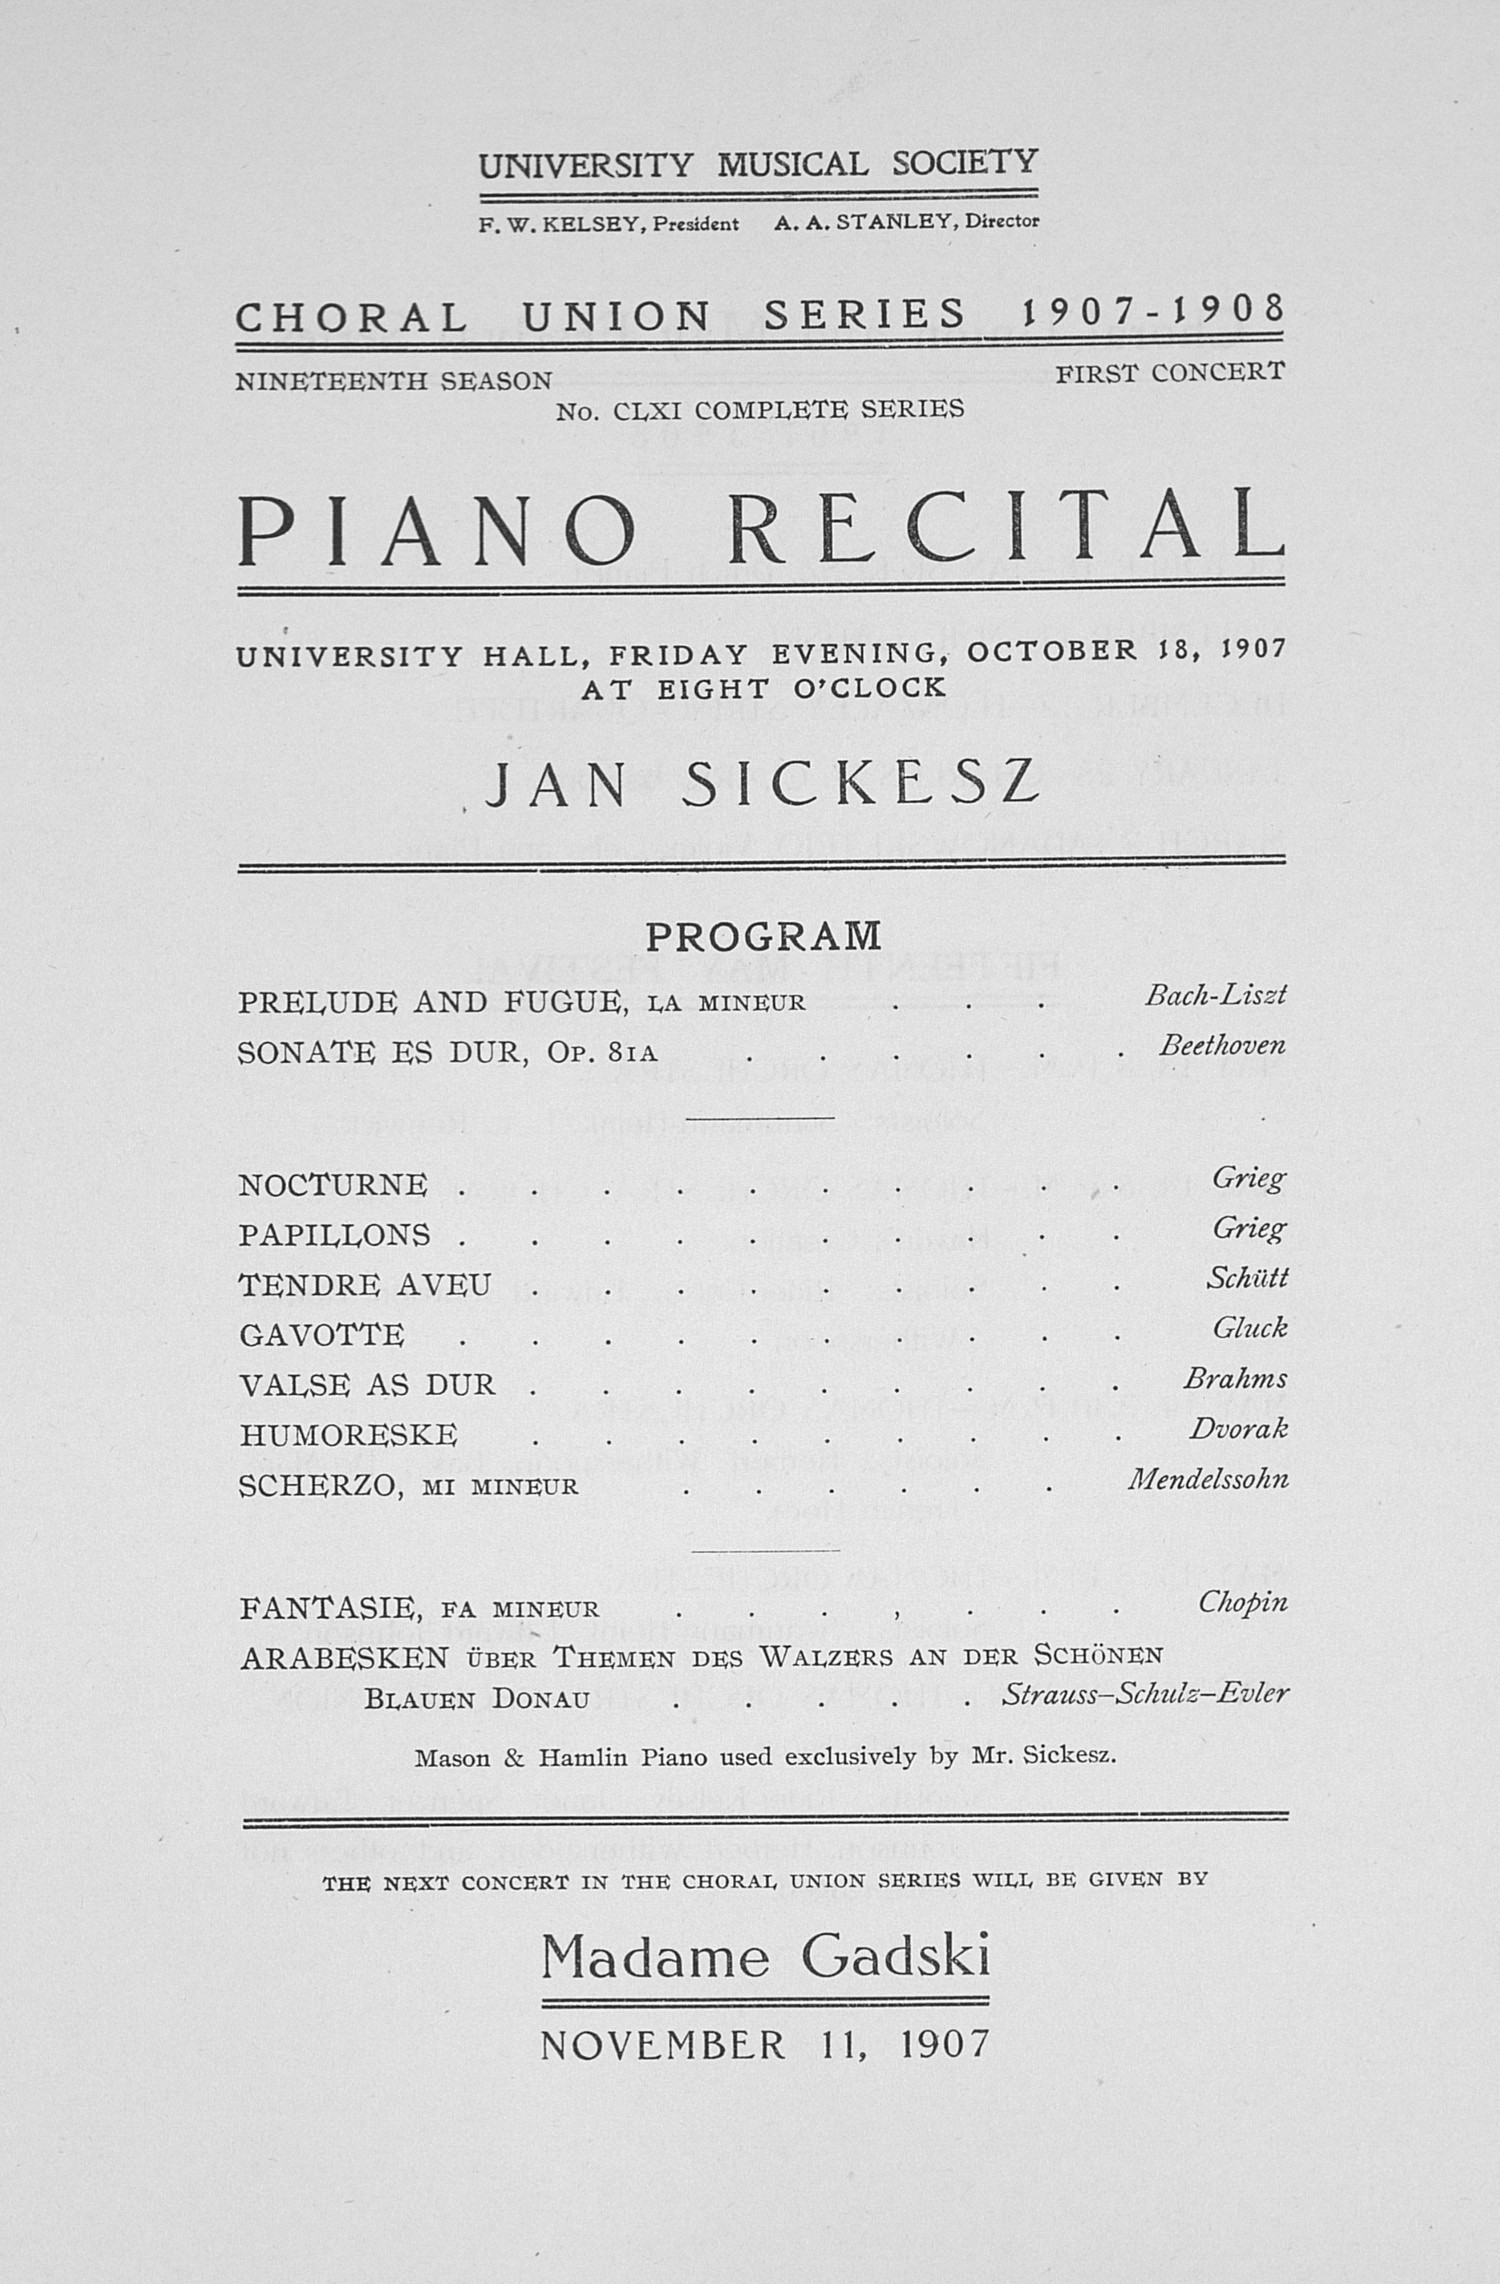 Piano Recital Program Template Free Beautiful Ums Concert Program October 18 1907 Choral Union Series